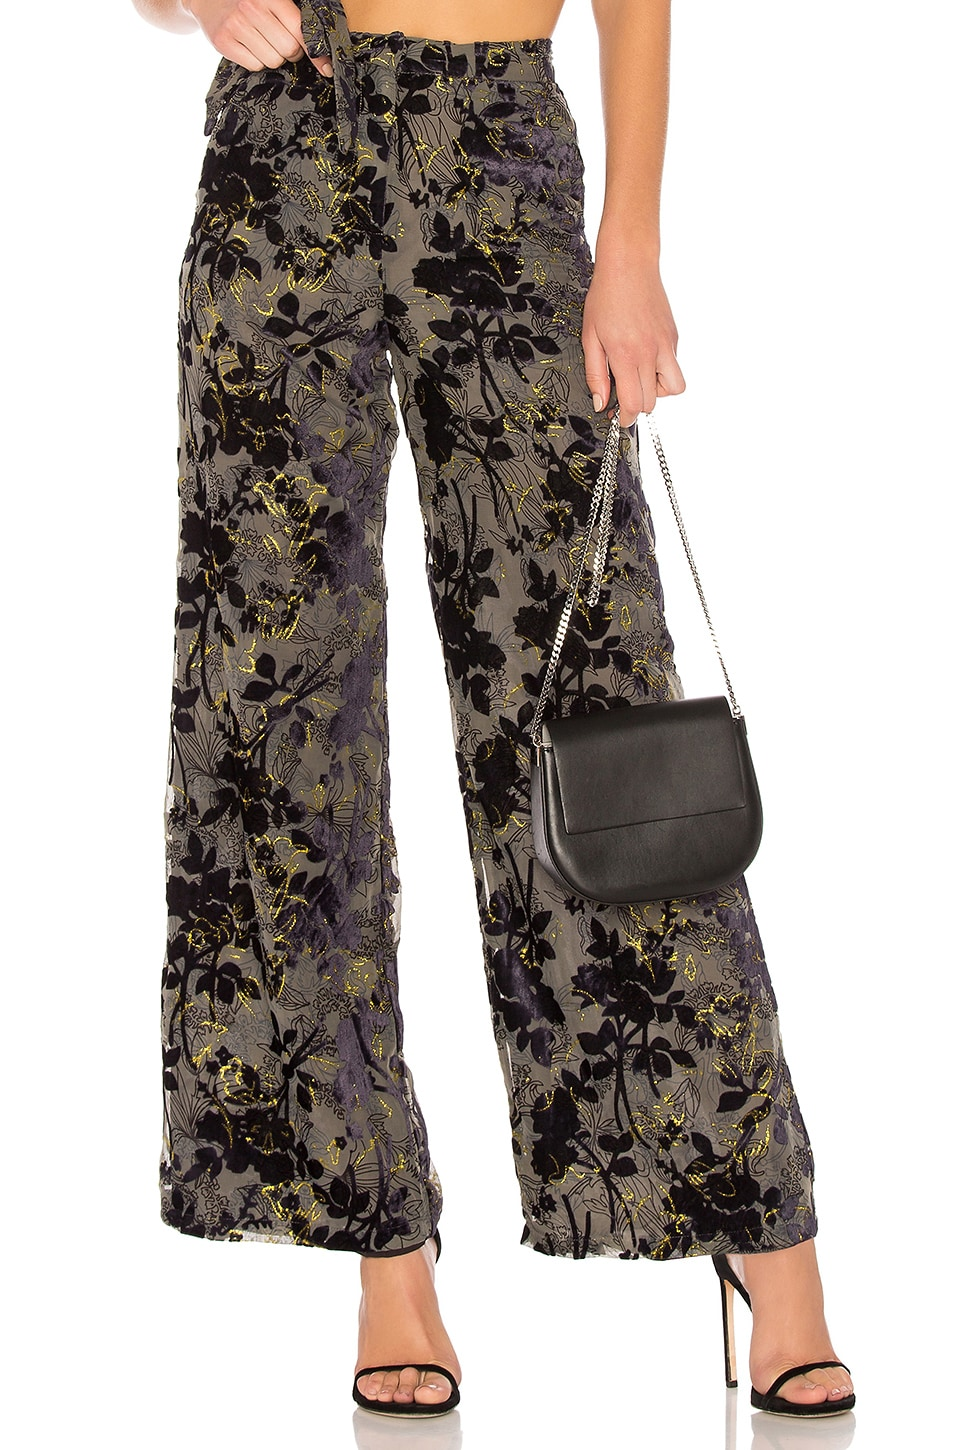 House of Harlow 1960 x REVOLVE Mona Pant in Antoinette Floral